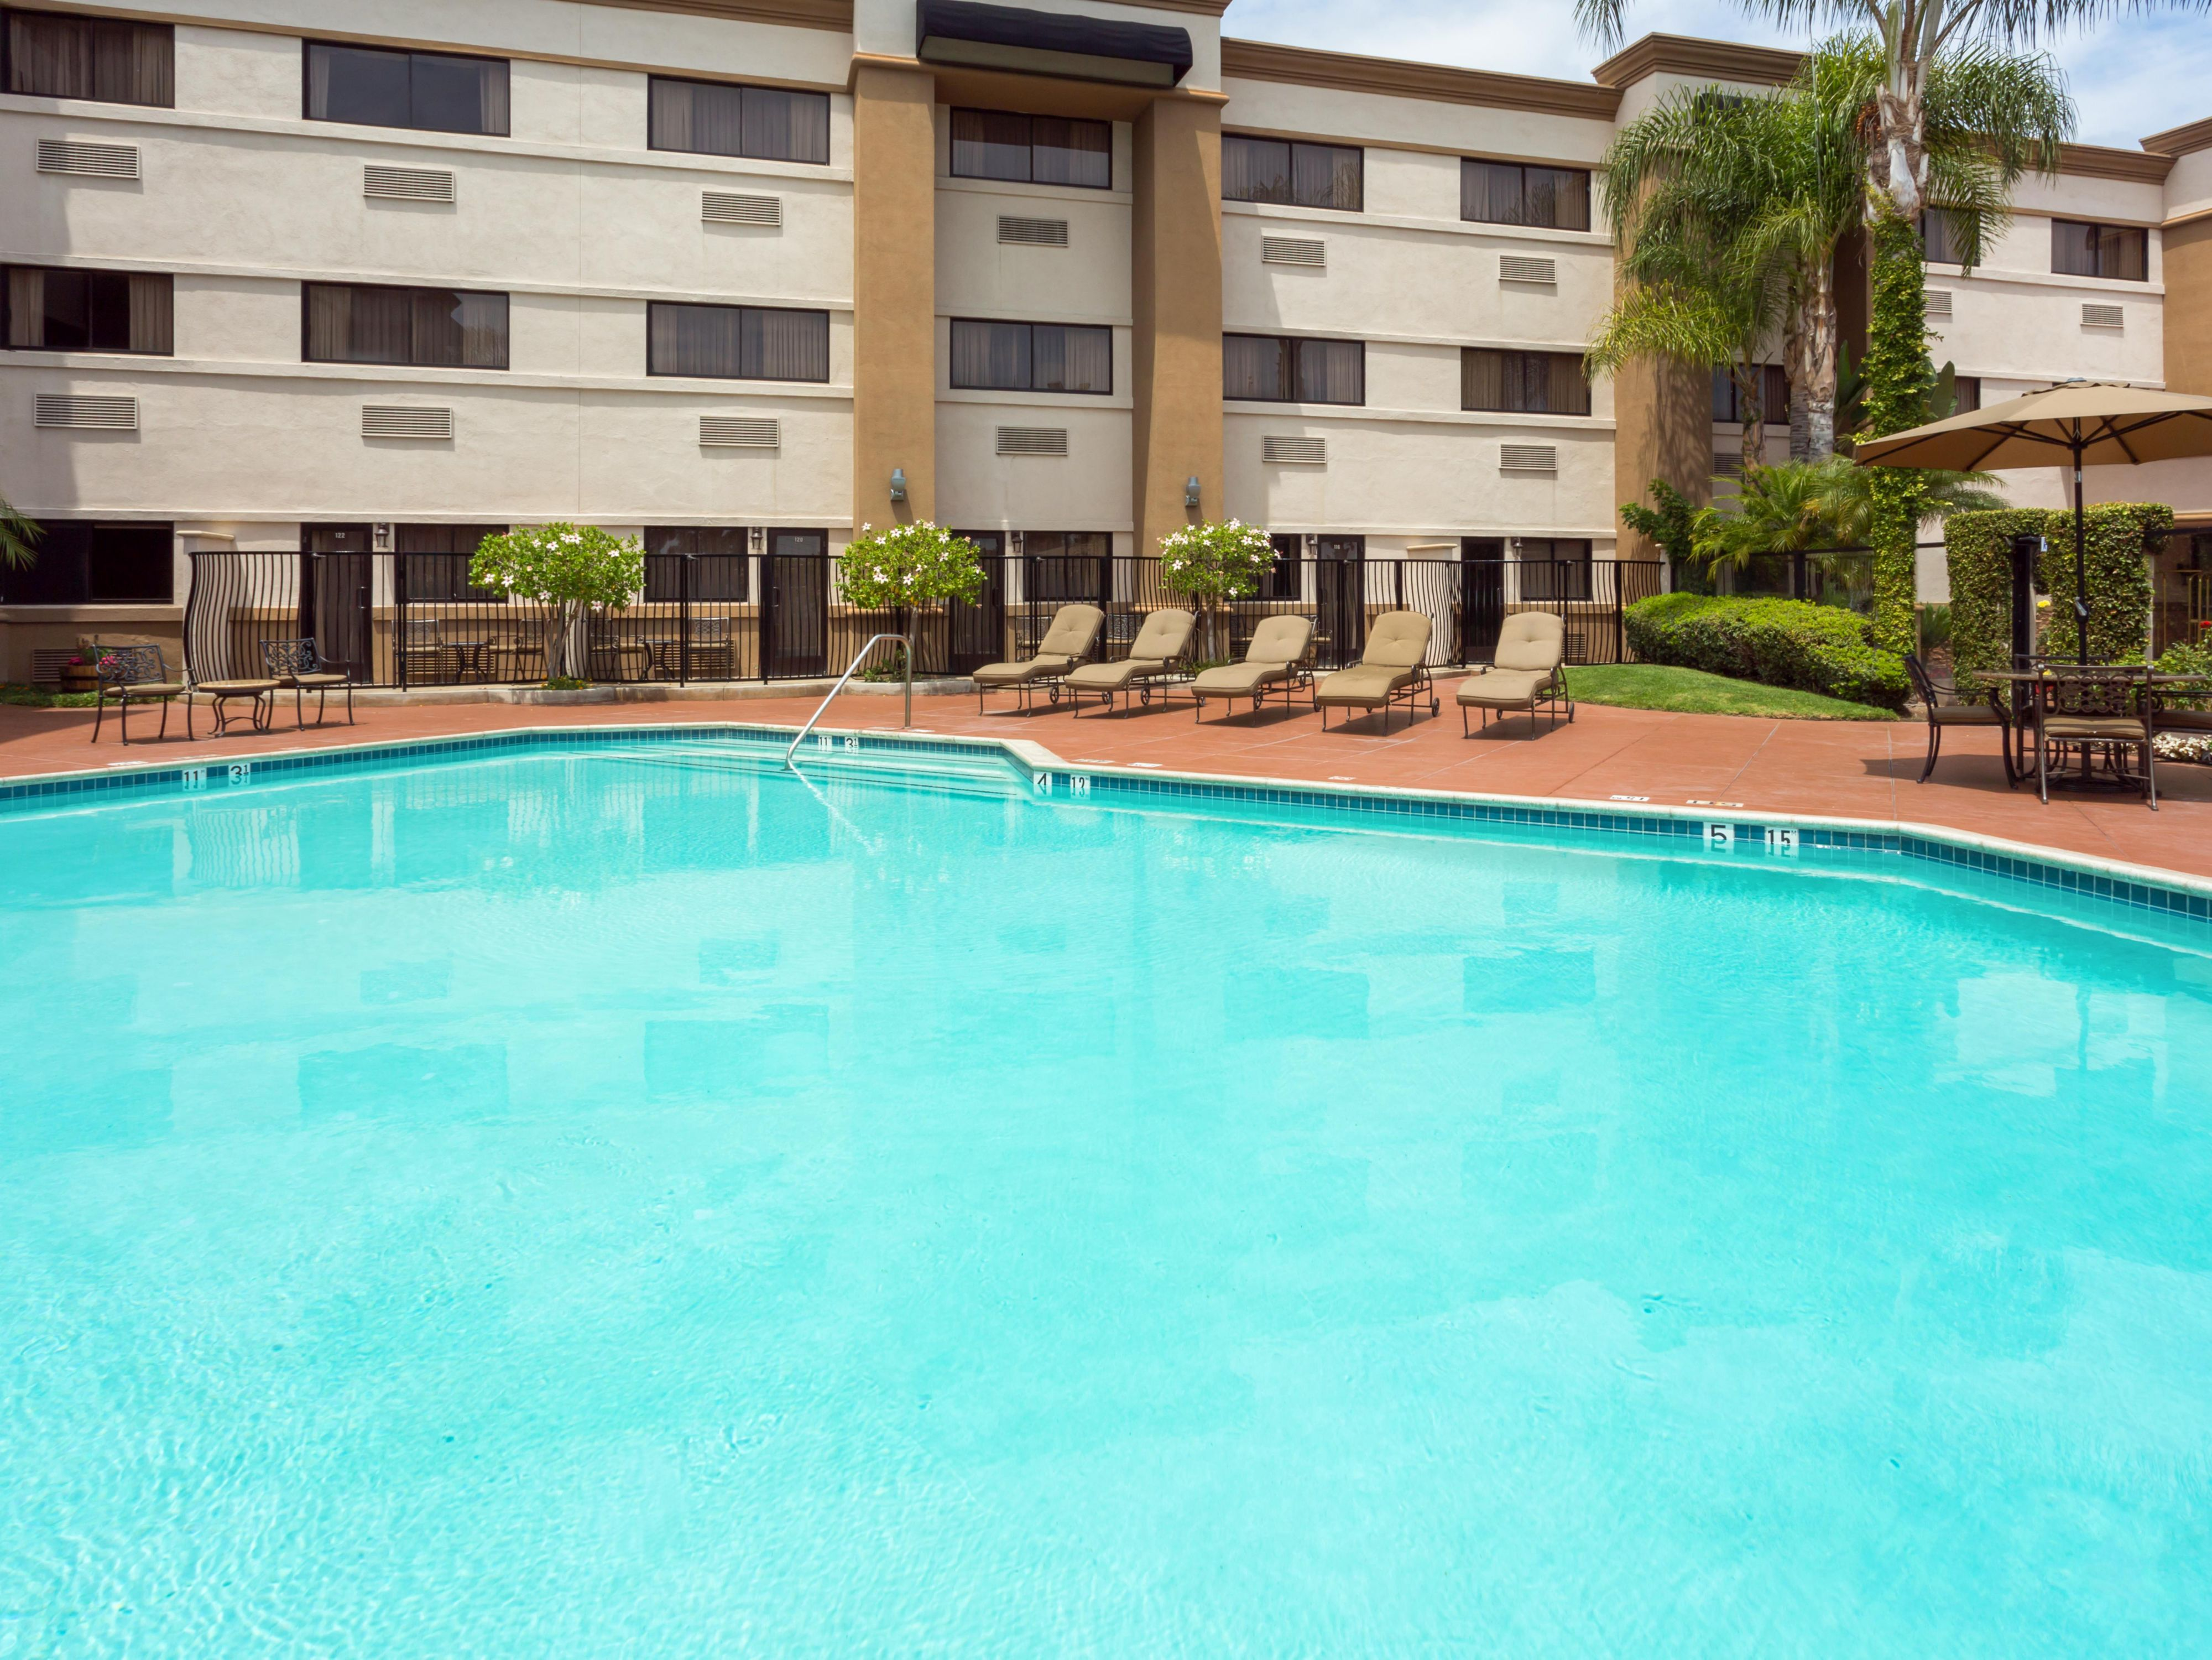 Soak up some California sun poolside at Holiday Inn OC Airport!